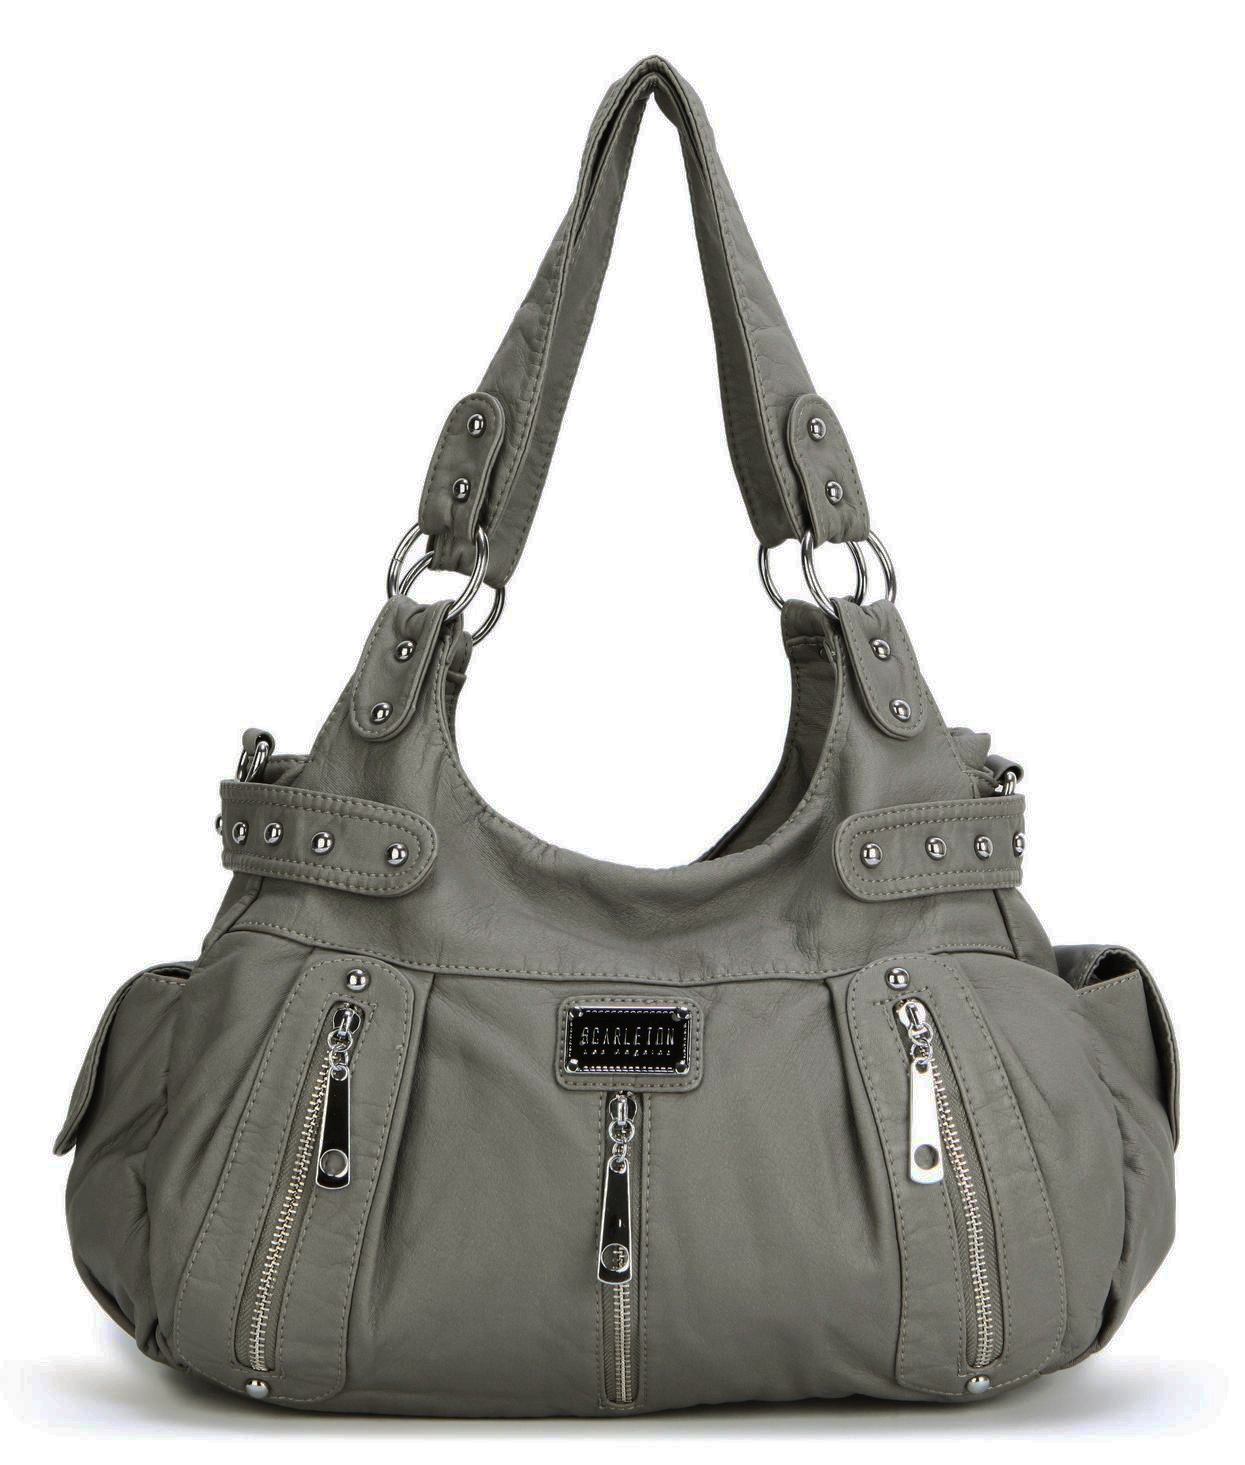 Scarleton 3 Front Zipper Washed Shoulder Bag H129224 - Ash by Scarleton